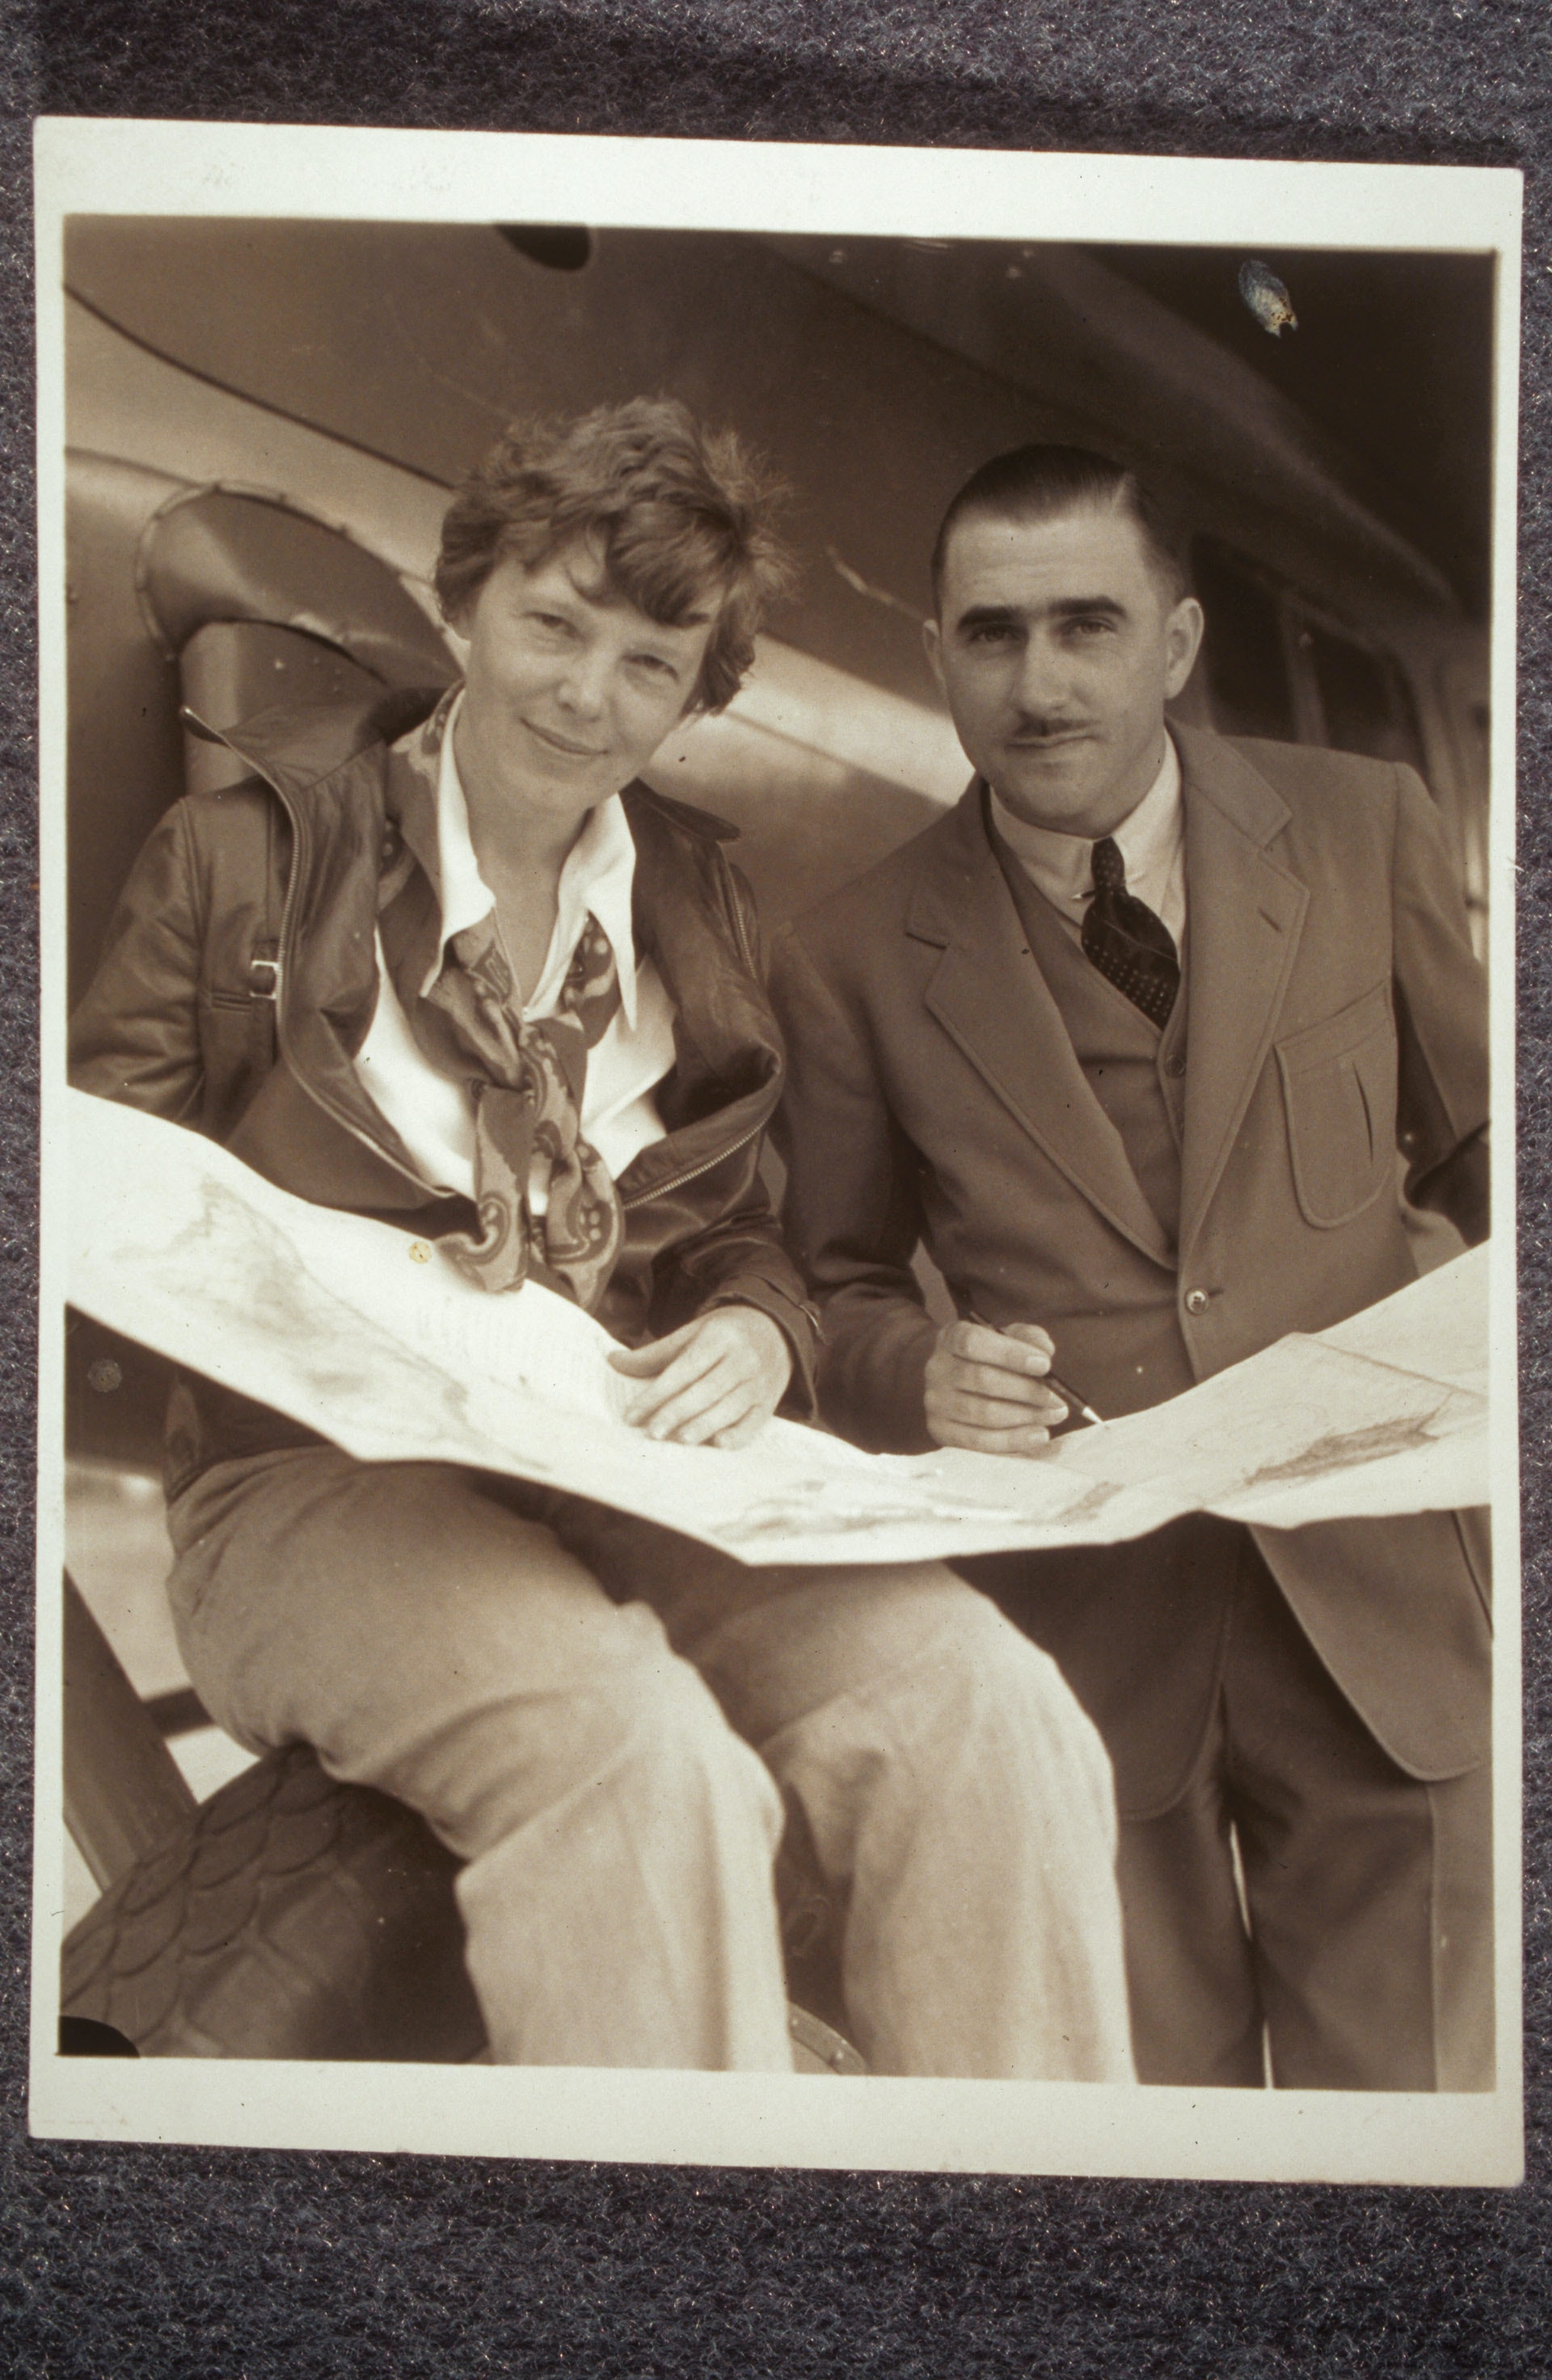 Amelia Earhart and Paul Mantz looking at a flight chart or map together